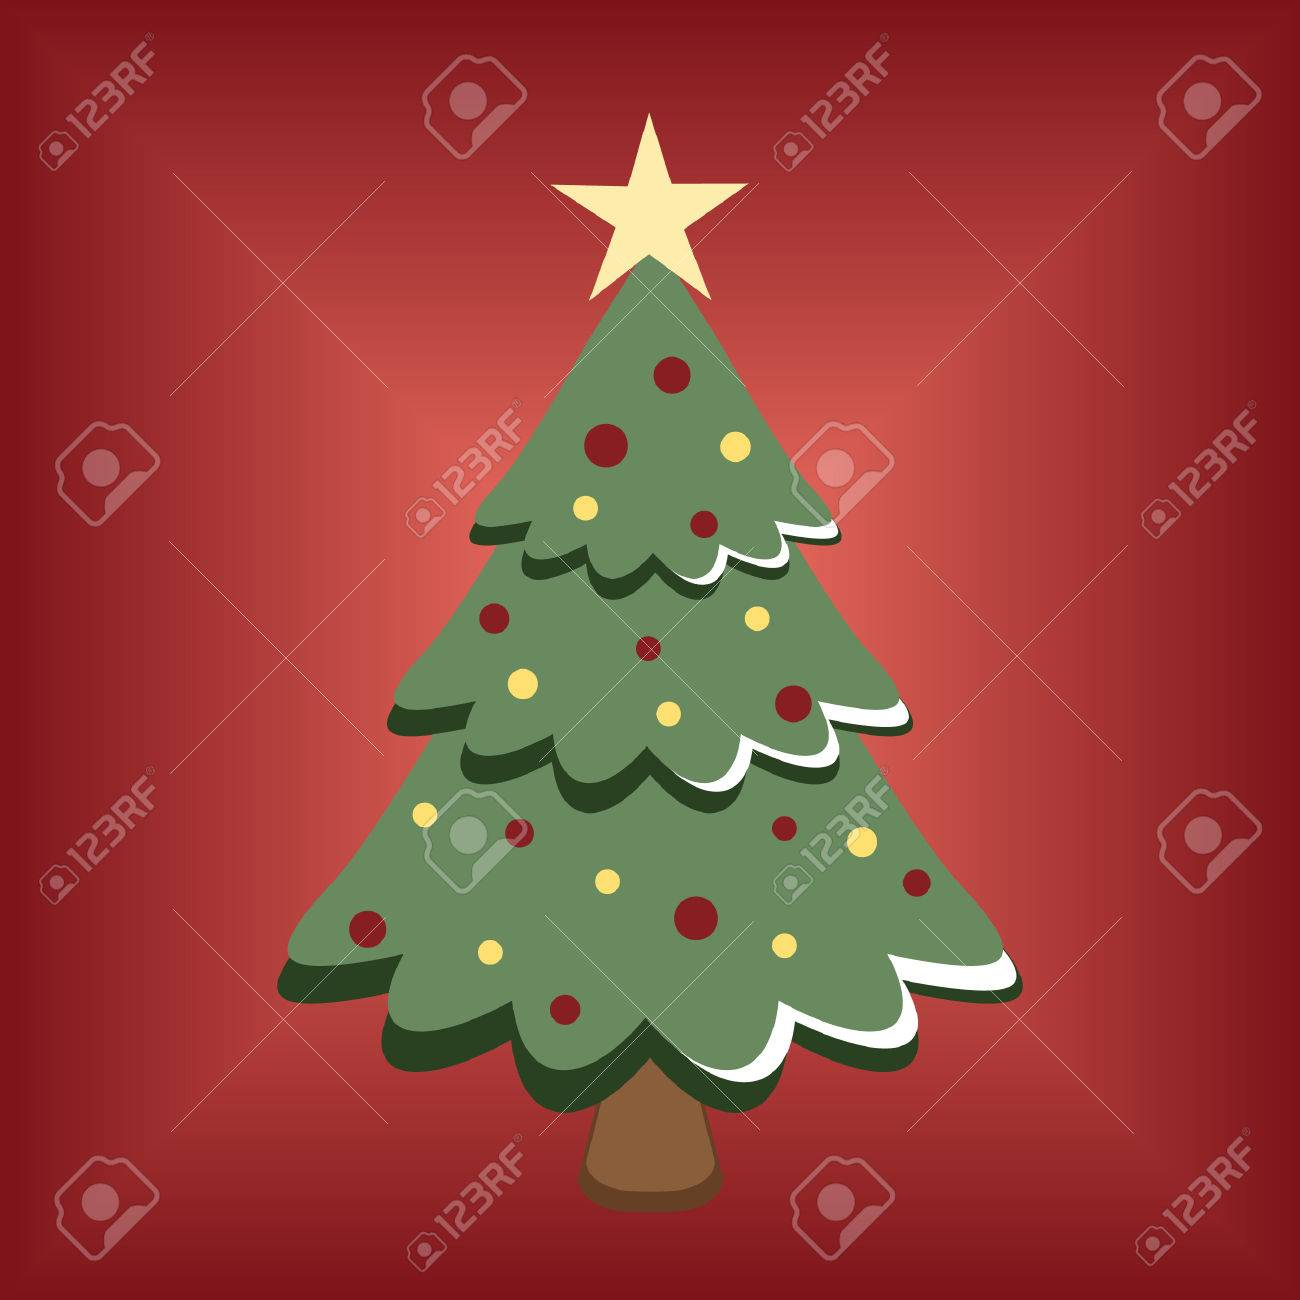 cartoon christmas tree on red background royalty free cliparts vectors and stock illustration image 5267017 cartoon christmas tree on red background